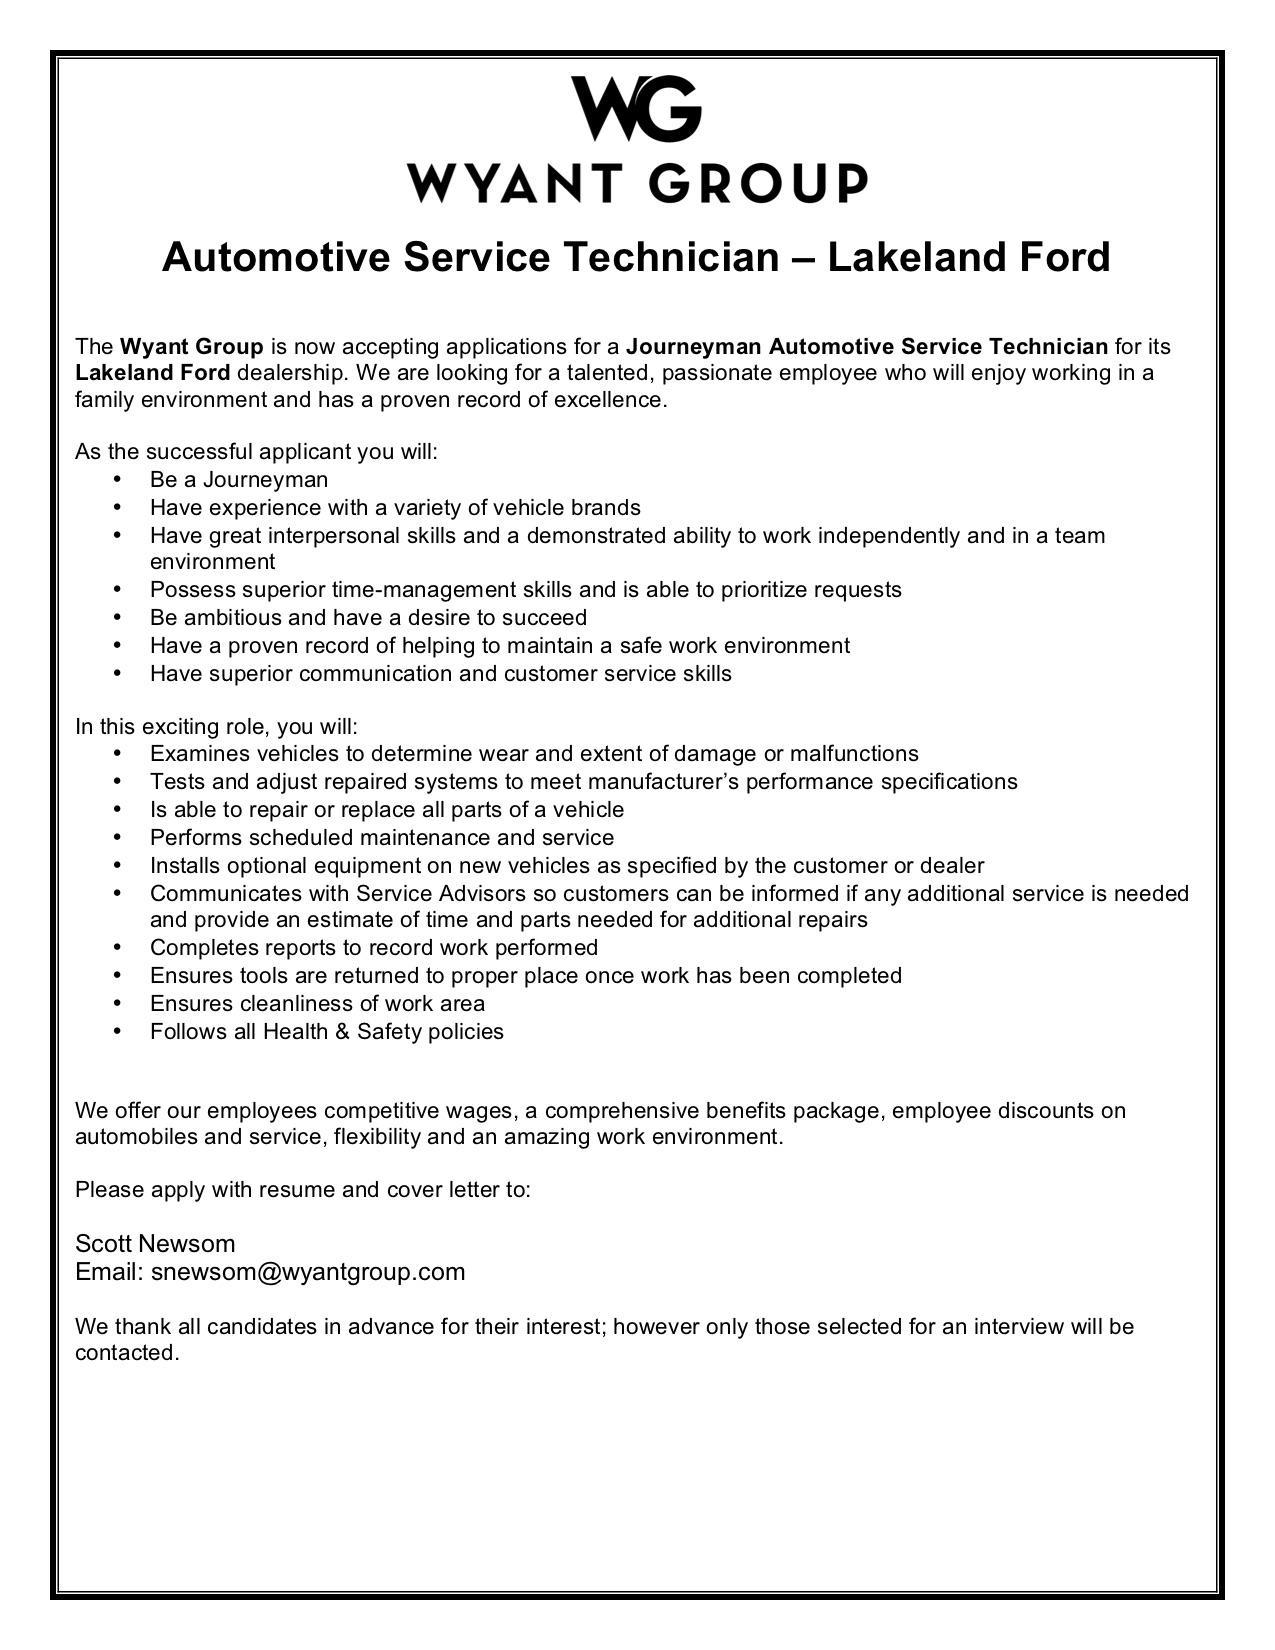 Lakeland Ford Journeyman Technician